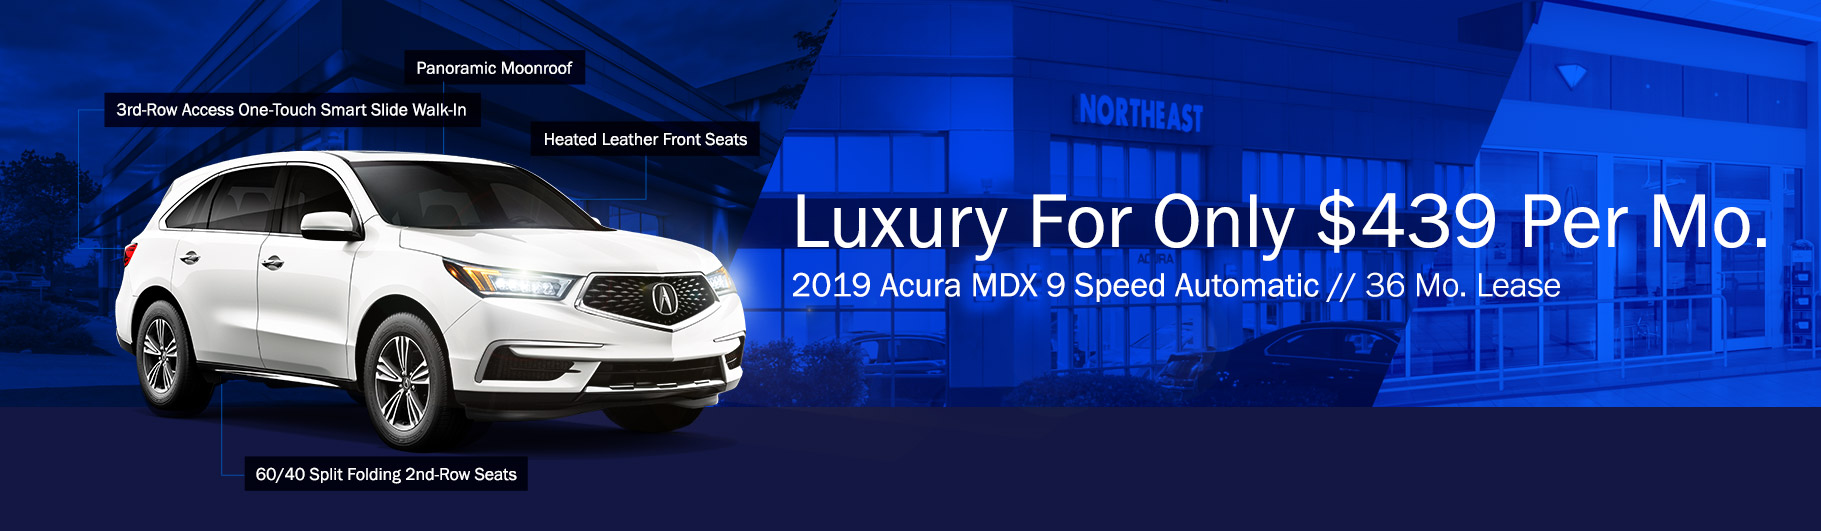 2019 Acura MDX 9 Speed Automatic - Lease for $439 per month for 36 months. 3rd-Row Access One-Touch Smart Slide Walk-In, Panoramic Moonroof, Heated Leather Front Seats, 60/40 Split Folding 2nd-Row Seats